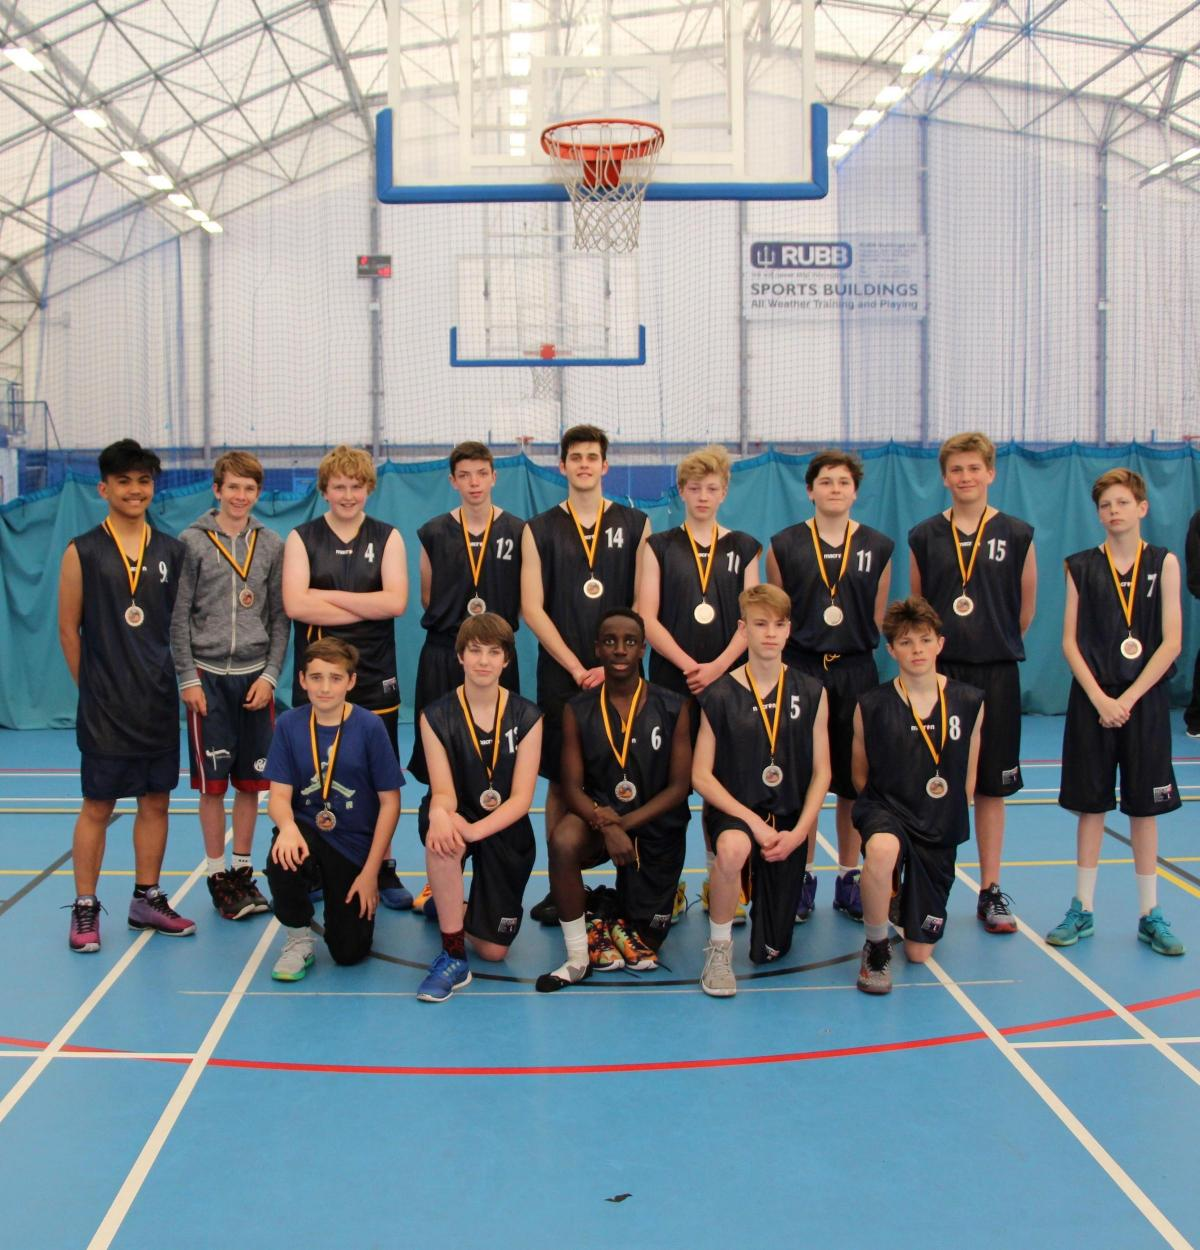 youth sport basketball dorset teams excel in tournament